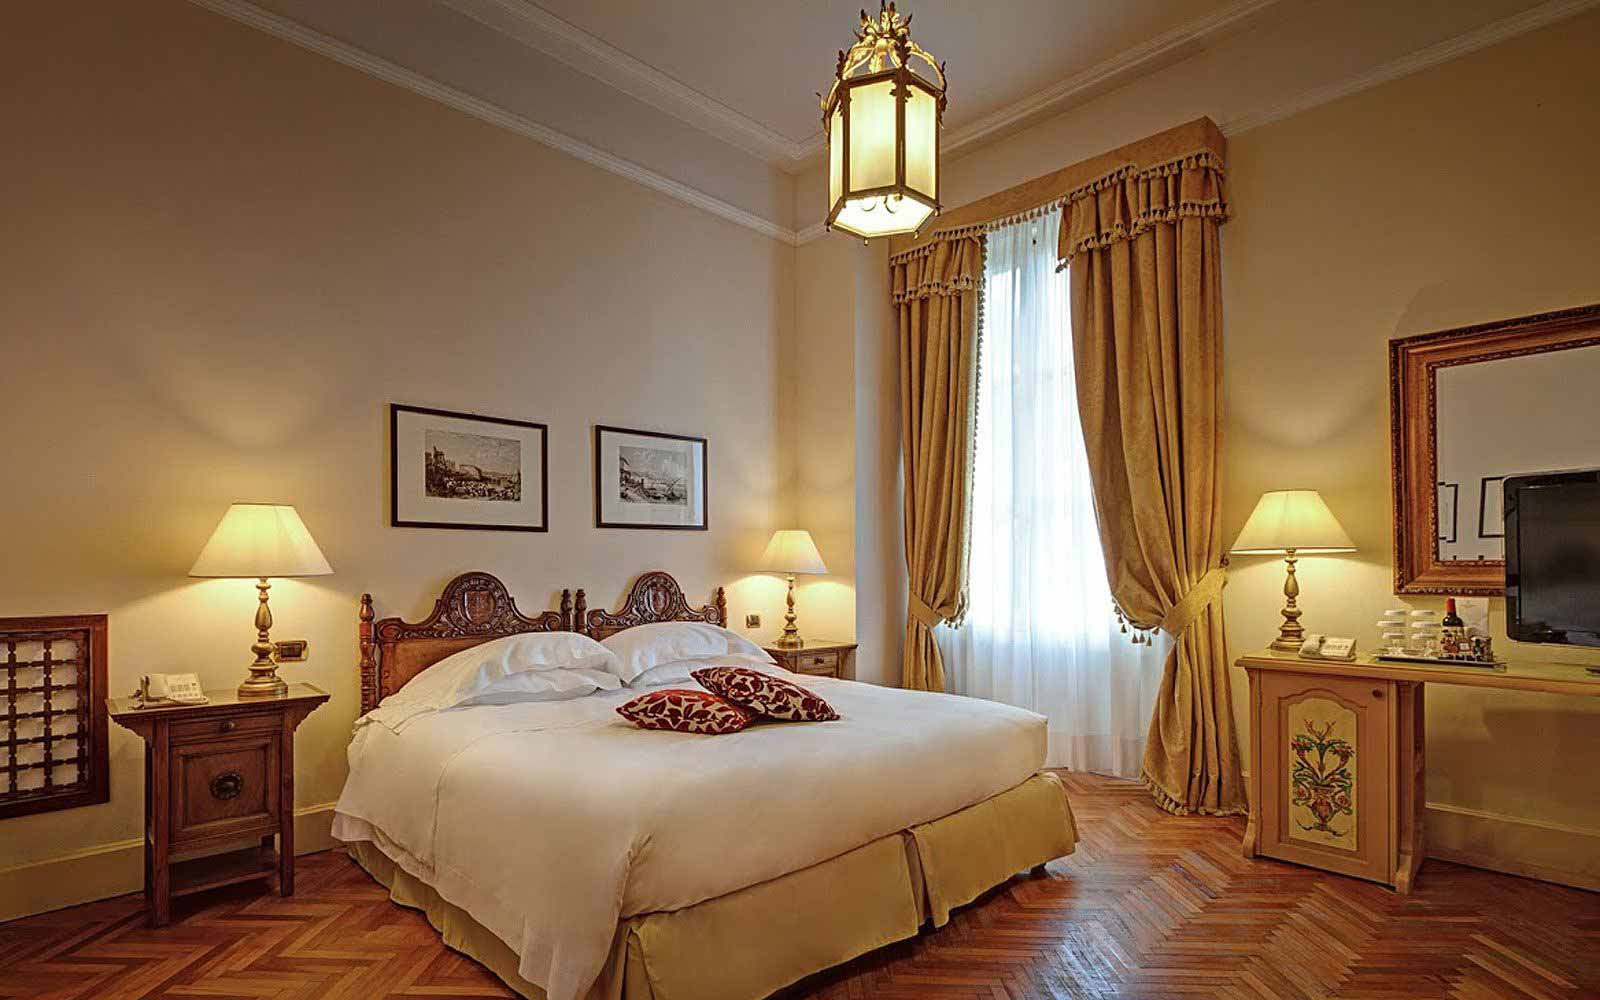 Classic room at San Domenico Palace Hotel